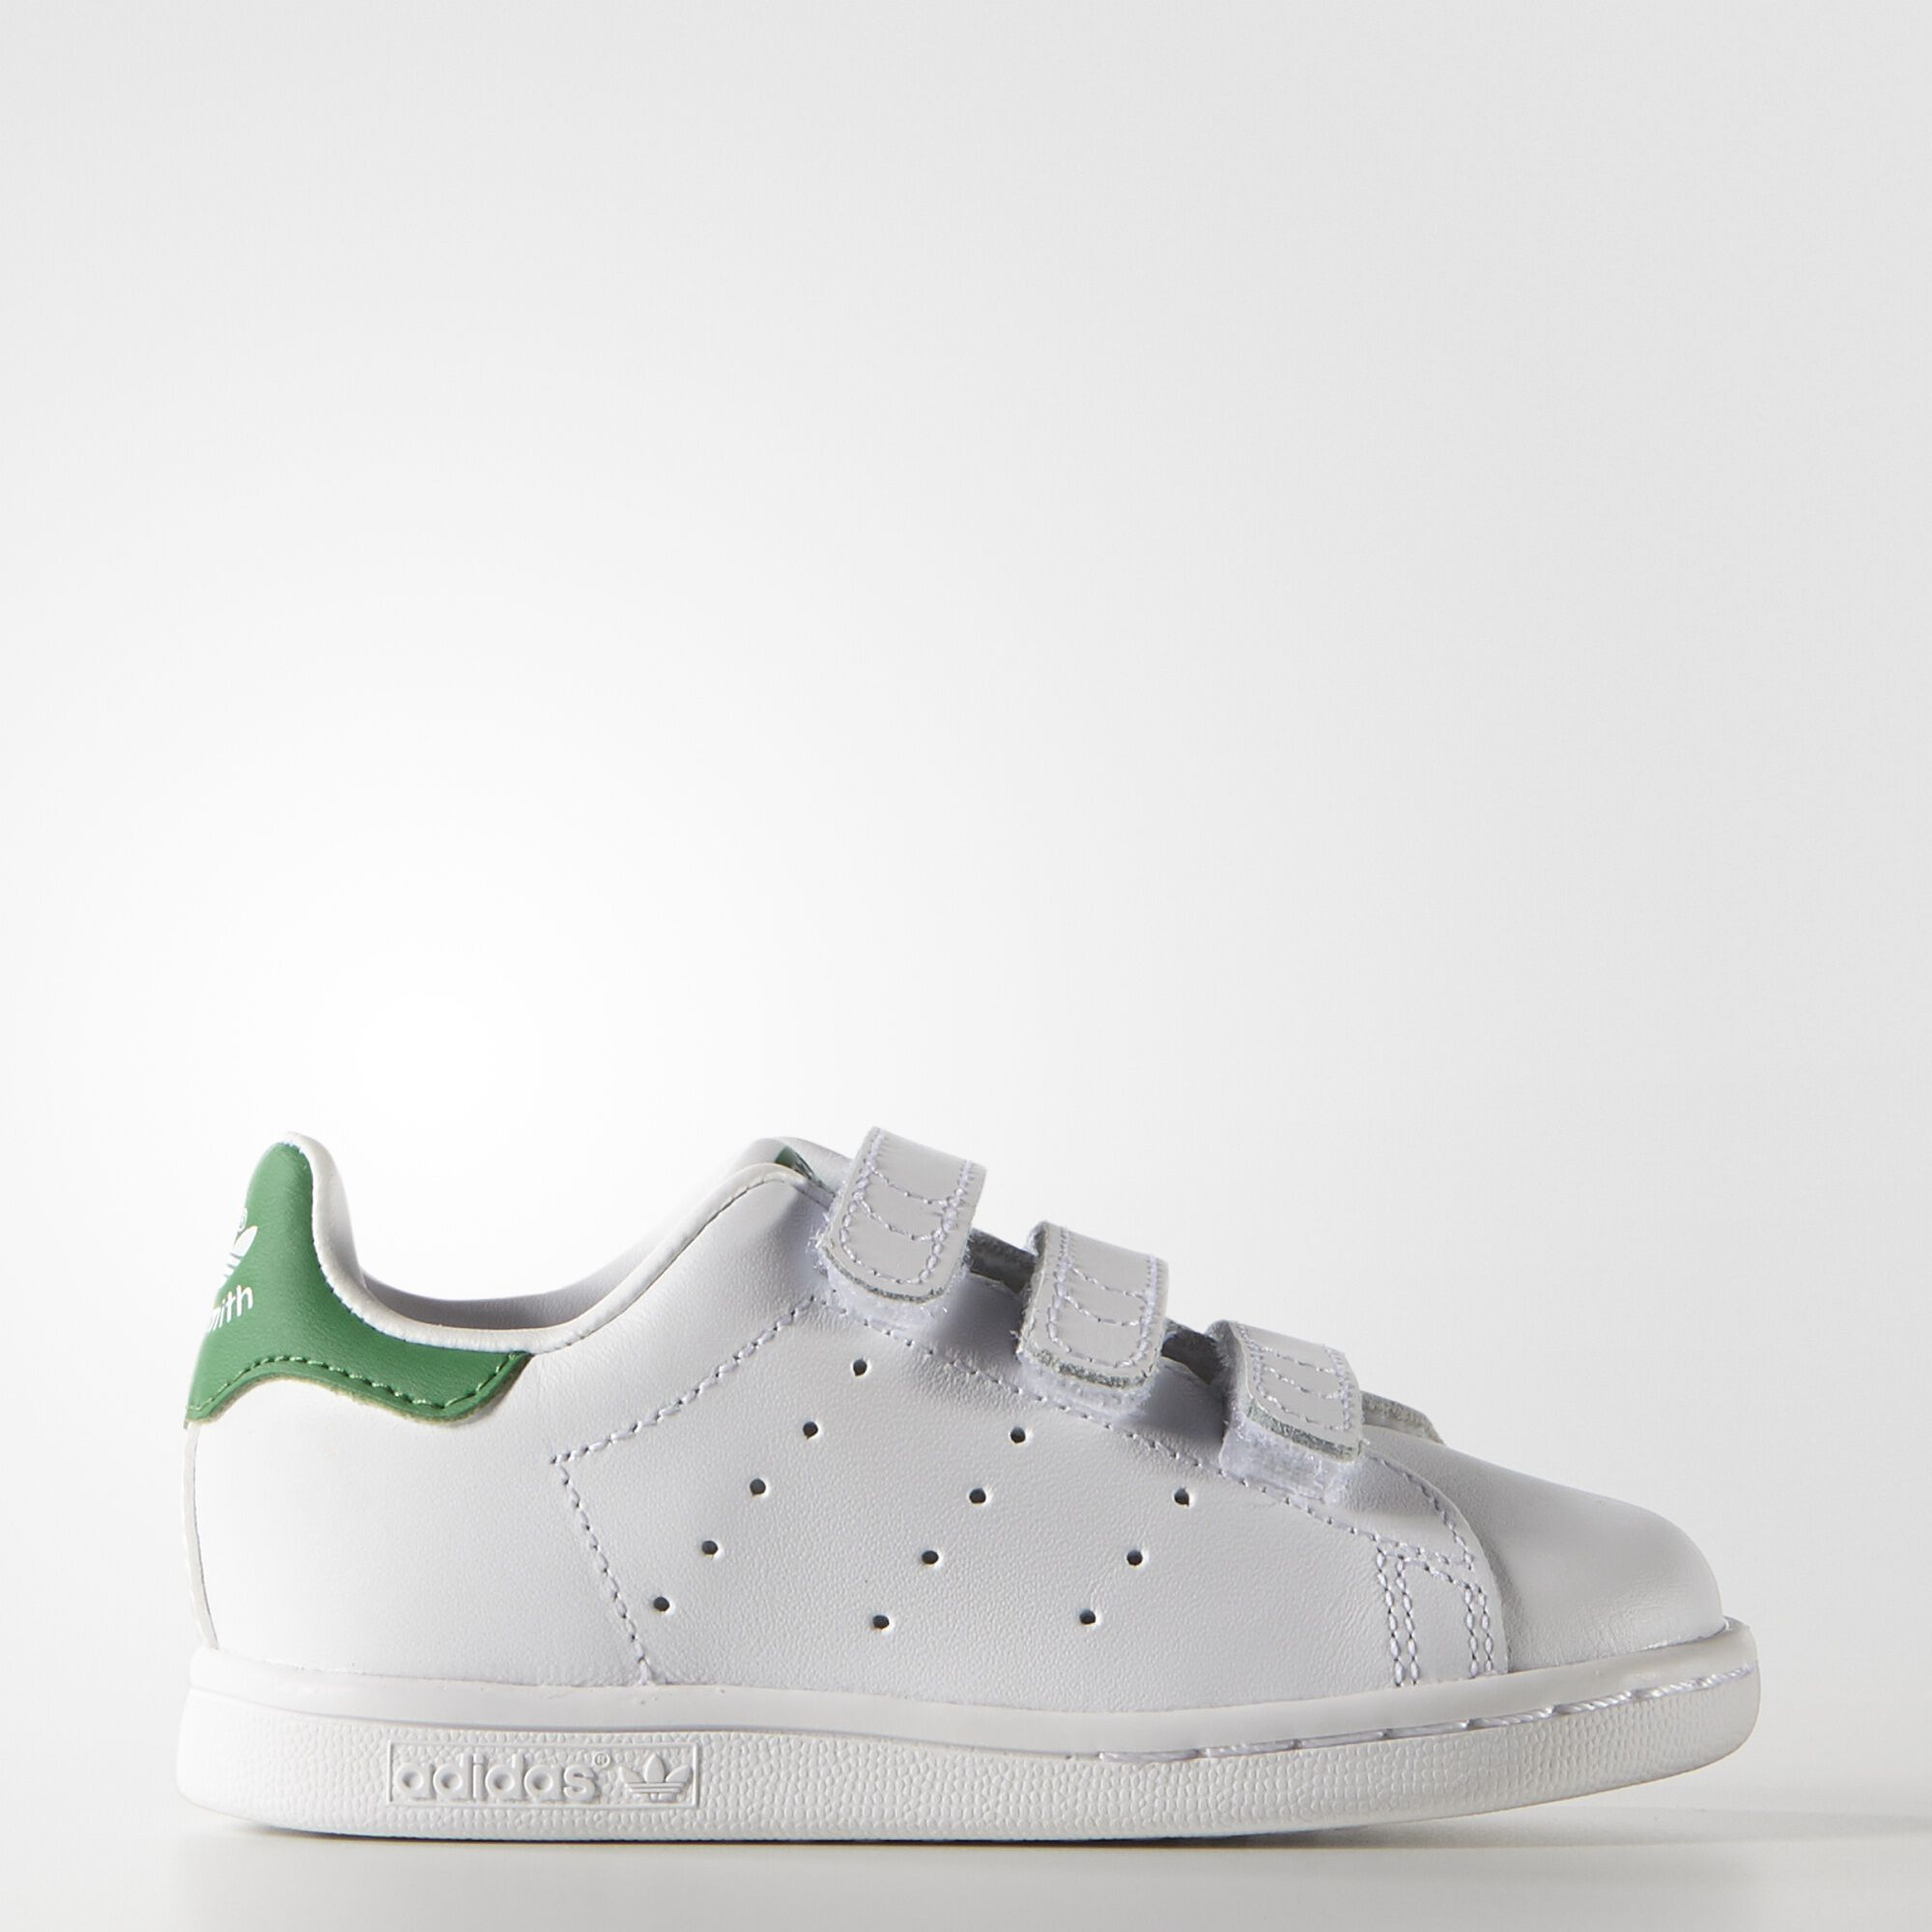 Stan Smith Adidas Gold